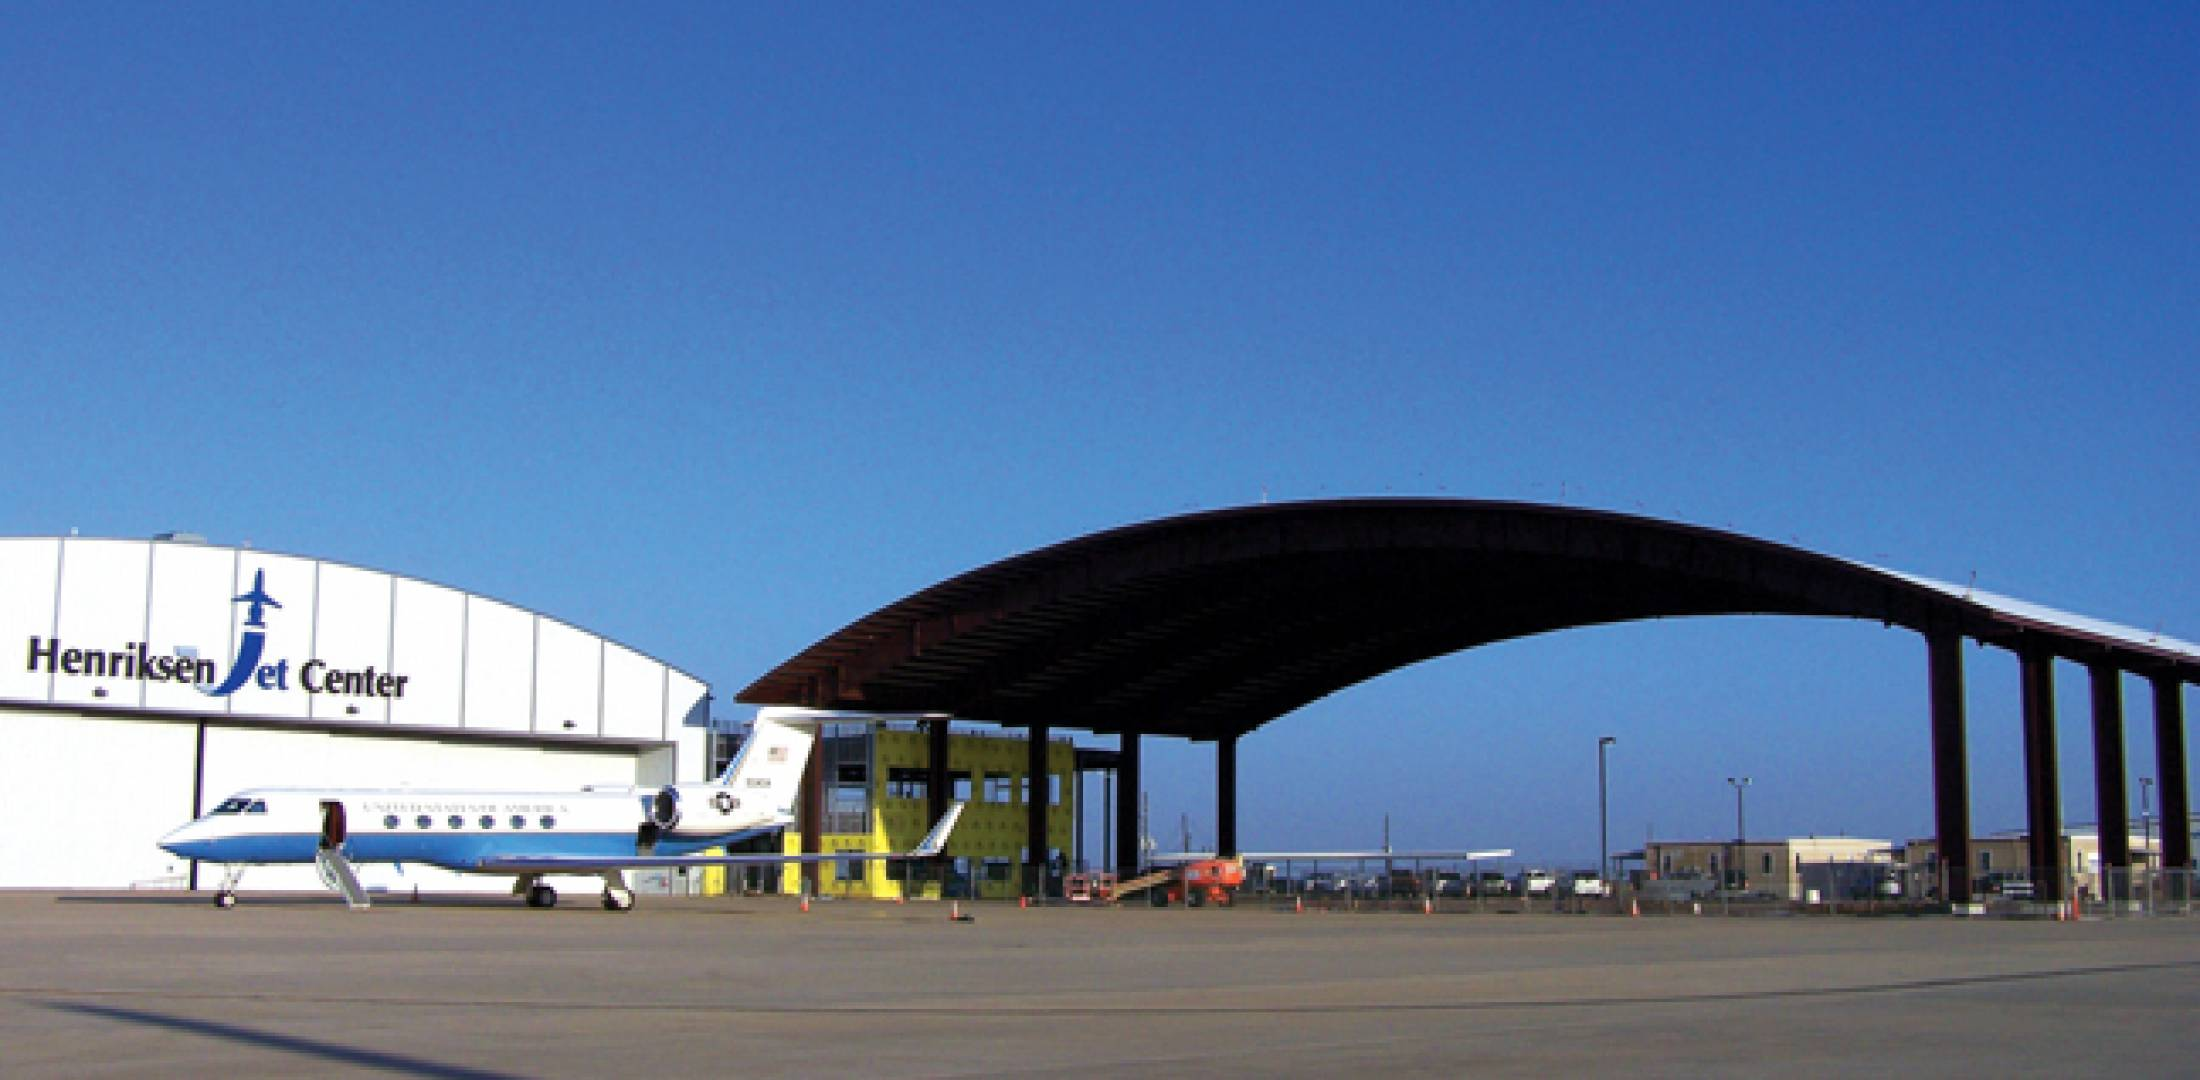 The 32800-sq-ft canopy at Houstonu0027s Henriksen Jet Center can provide shelter for & Houston FBO To Debut with Worldu0027s Largest Canopy | Business ...